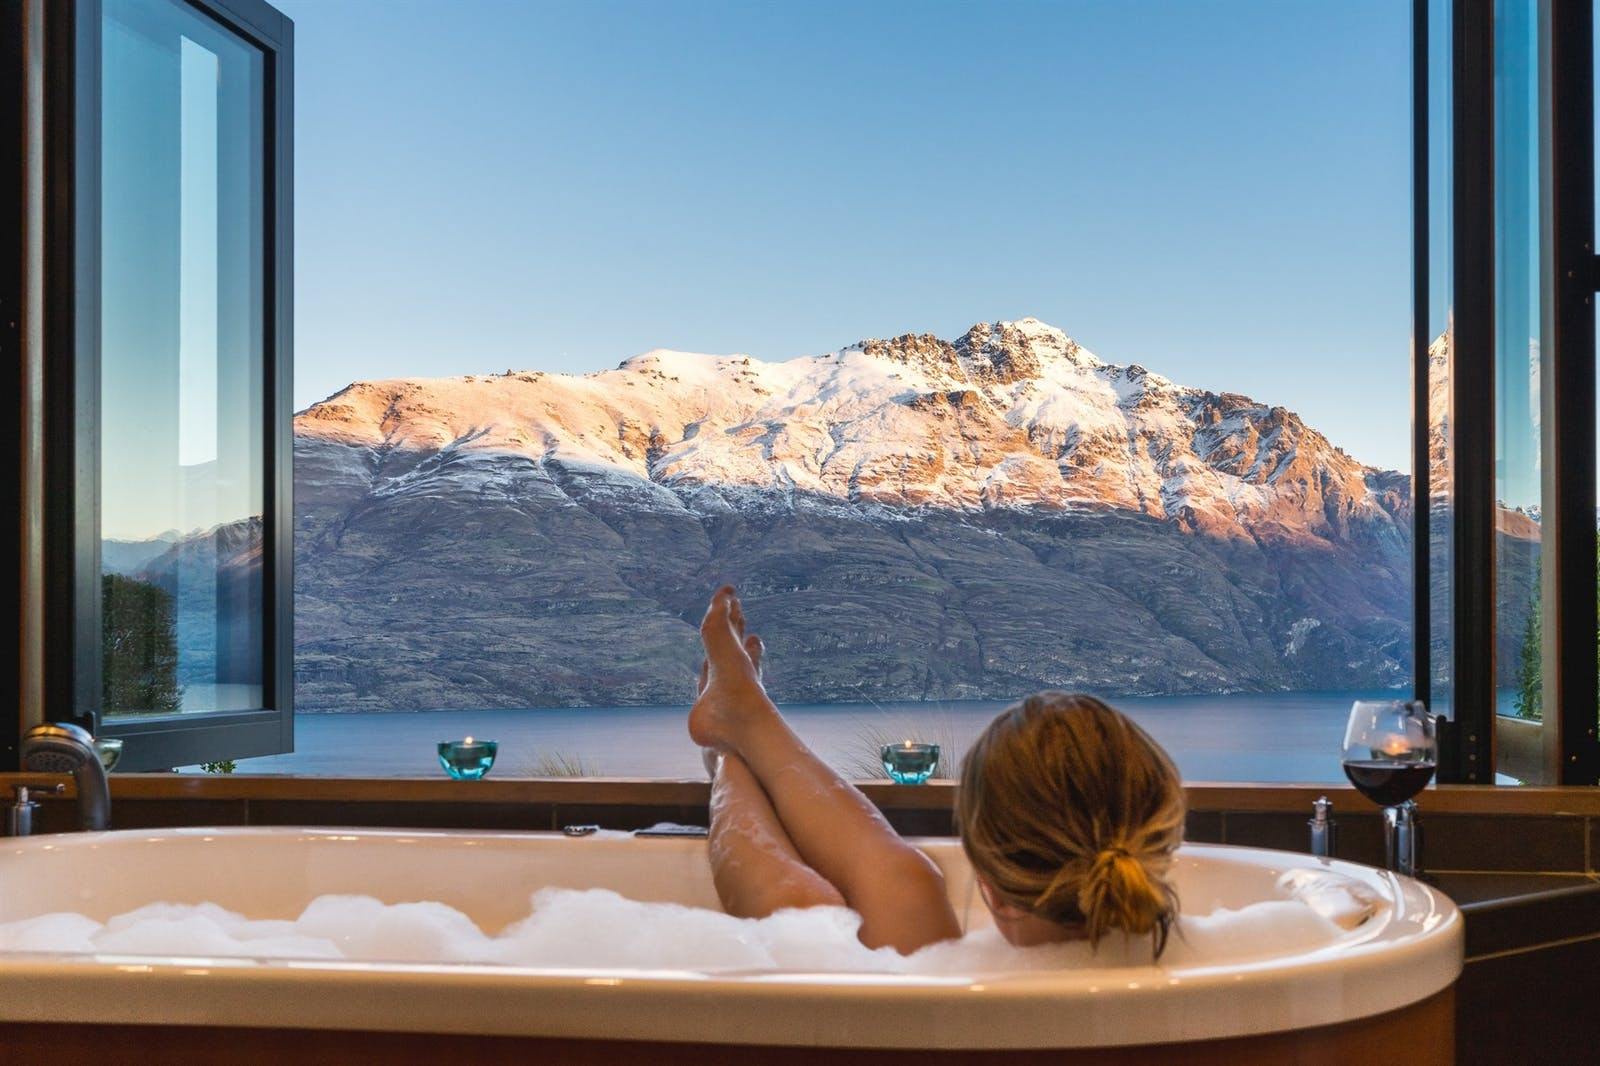 Bathing at Azur Lodge, Queenstown, South Island, New Zealand